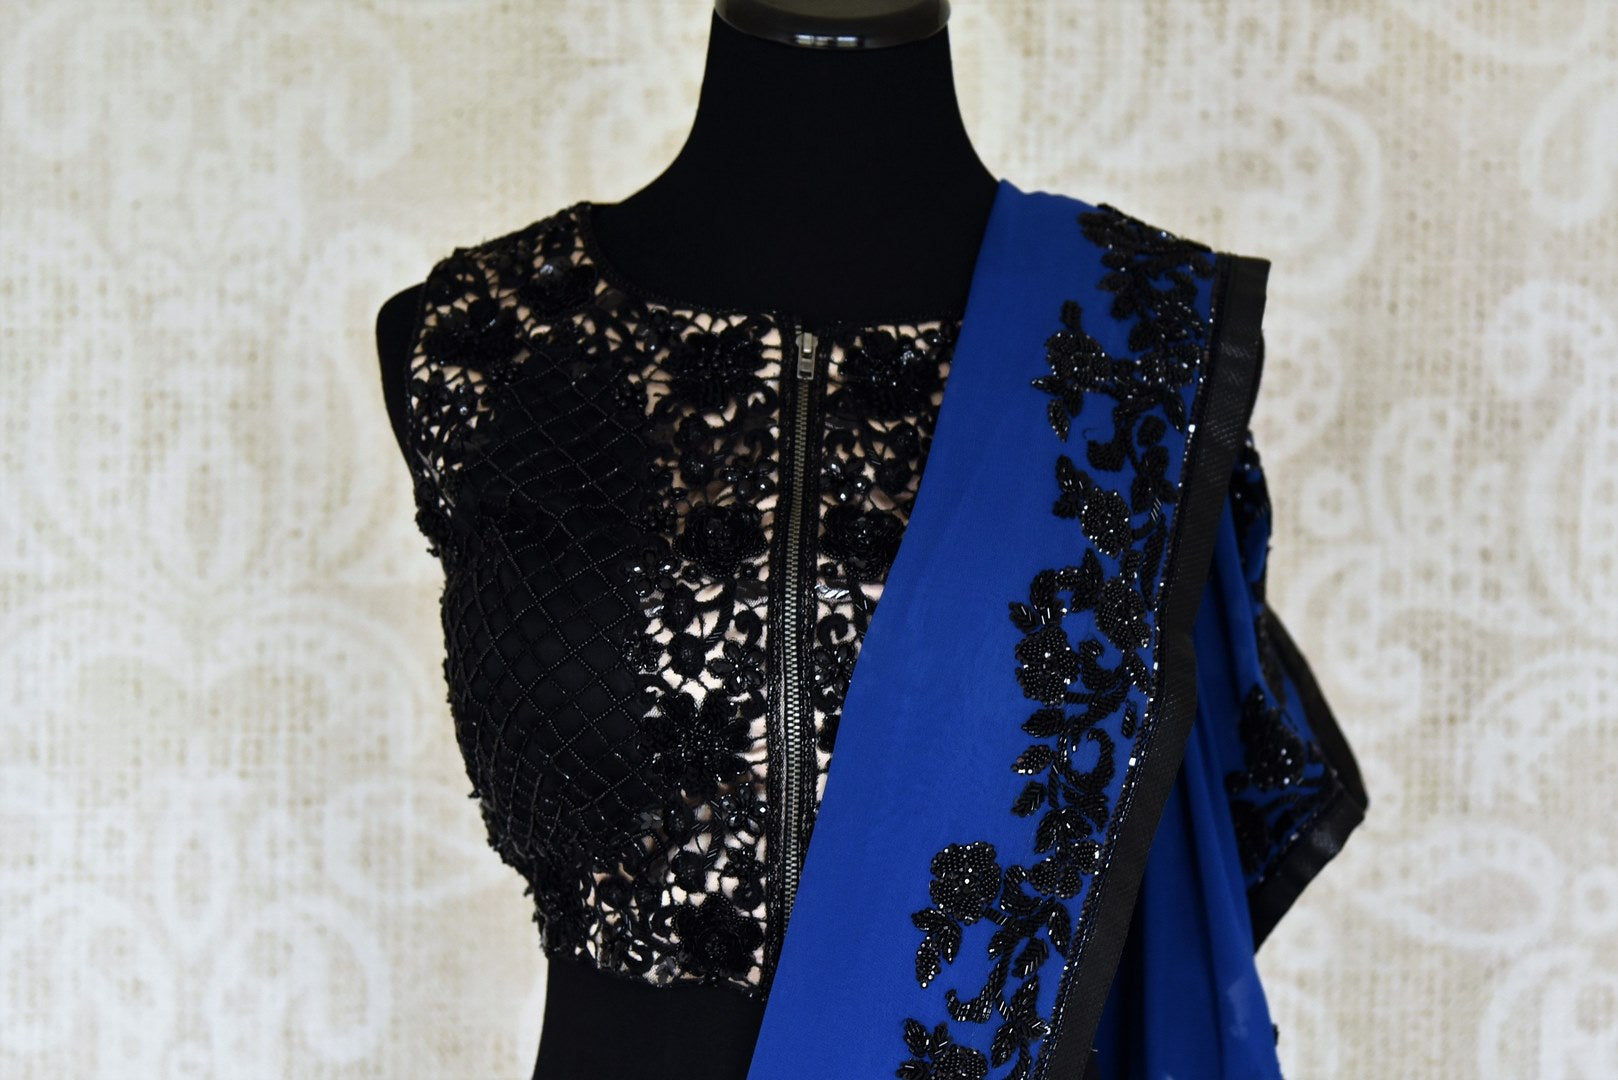 Buy dark blue hand work georgette sari online in USA with black blouse. Elevate your traditional style with exquisite Indian designer sarees from Pure Elegance Indian clothing store in USA. Explore a range of stunning silk sarees, embroidered sarees, wedding sarees especially from India for women in USA.-blouse pallu